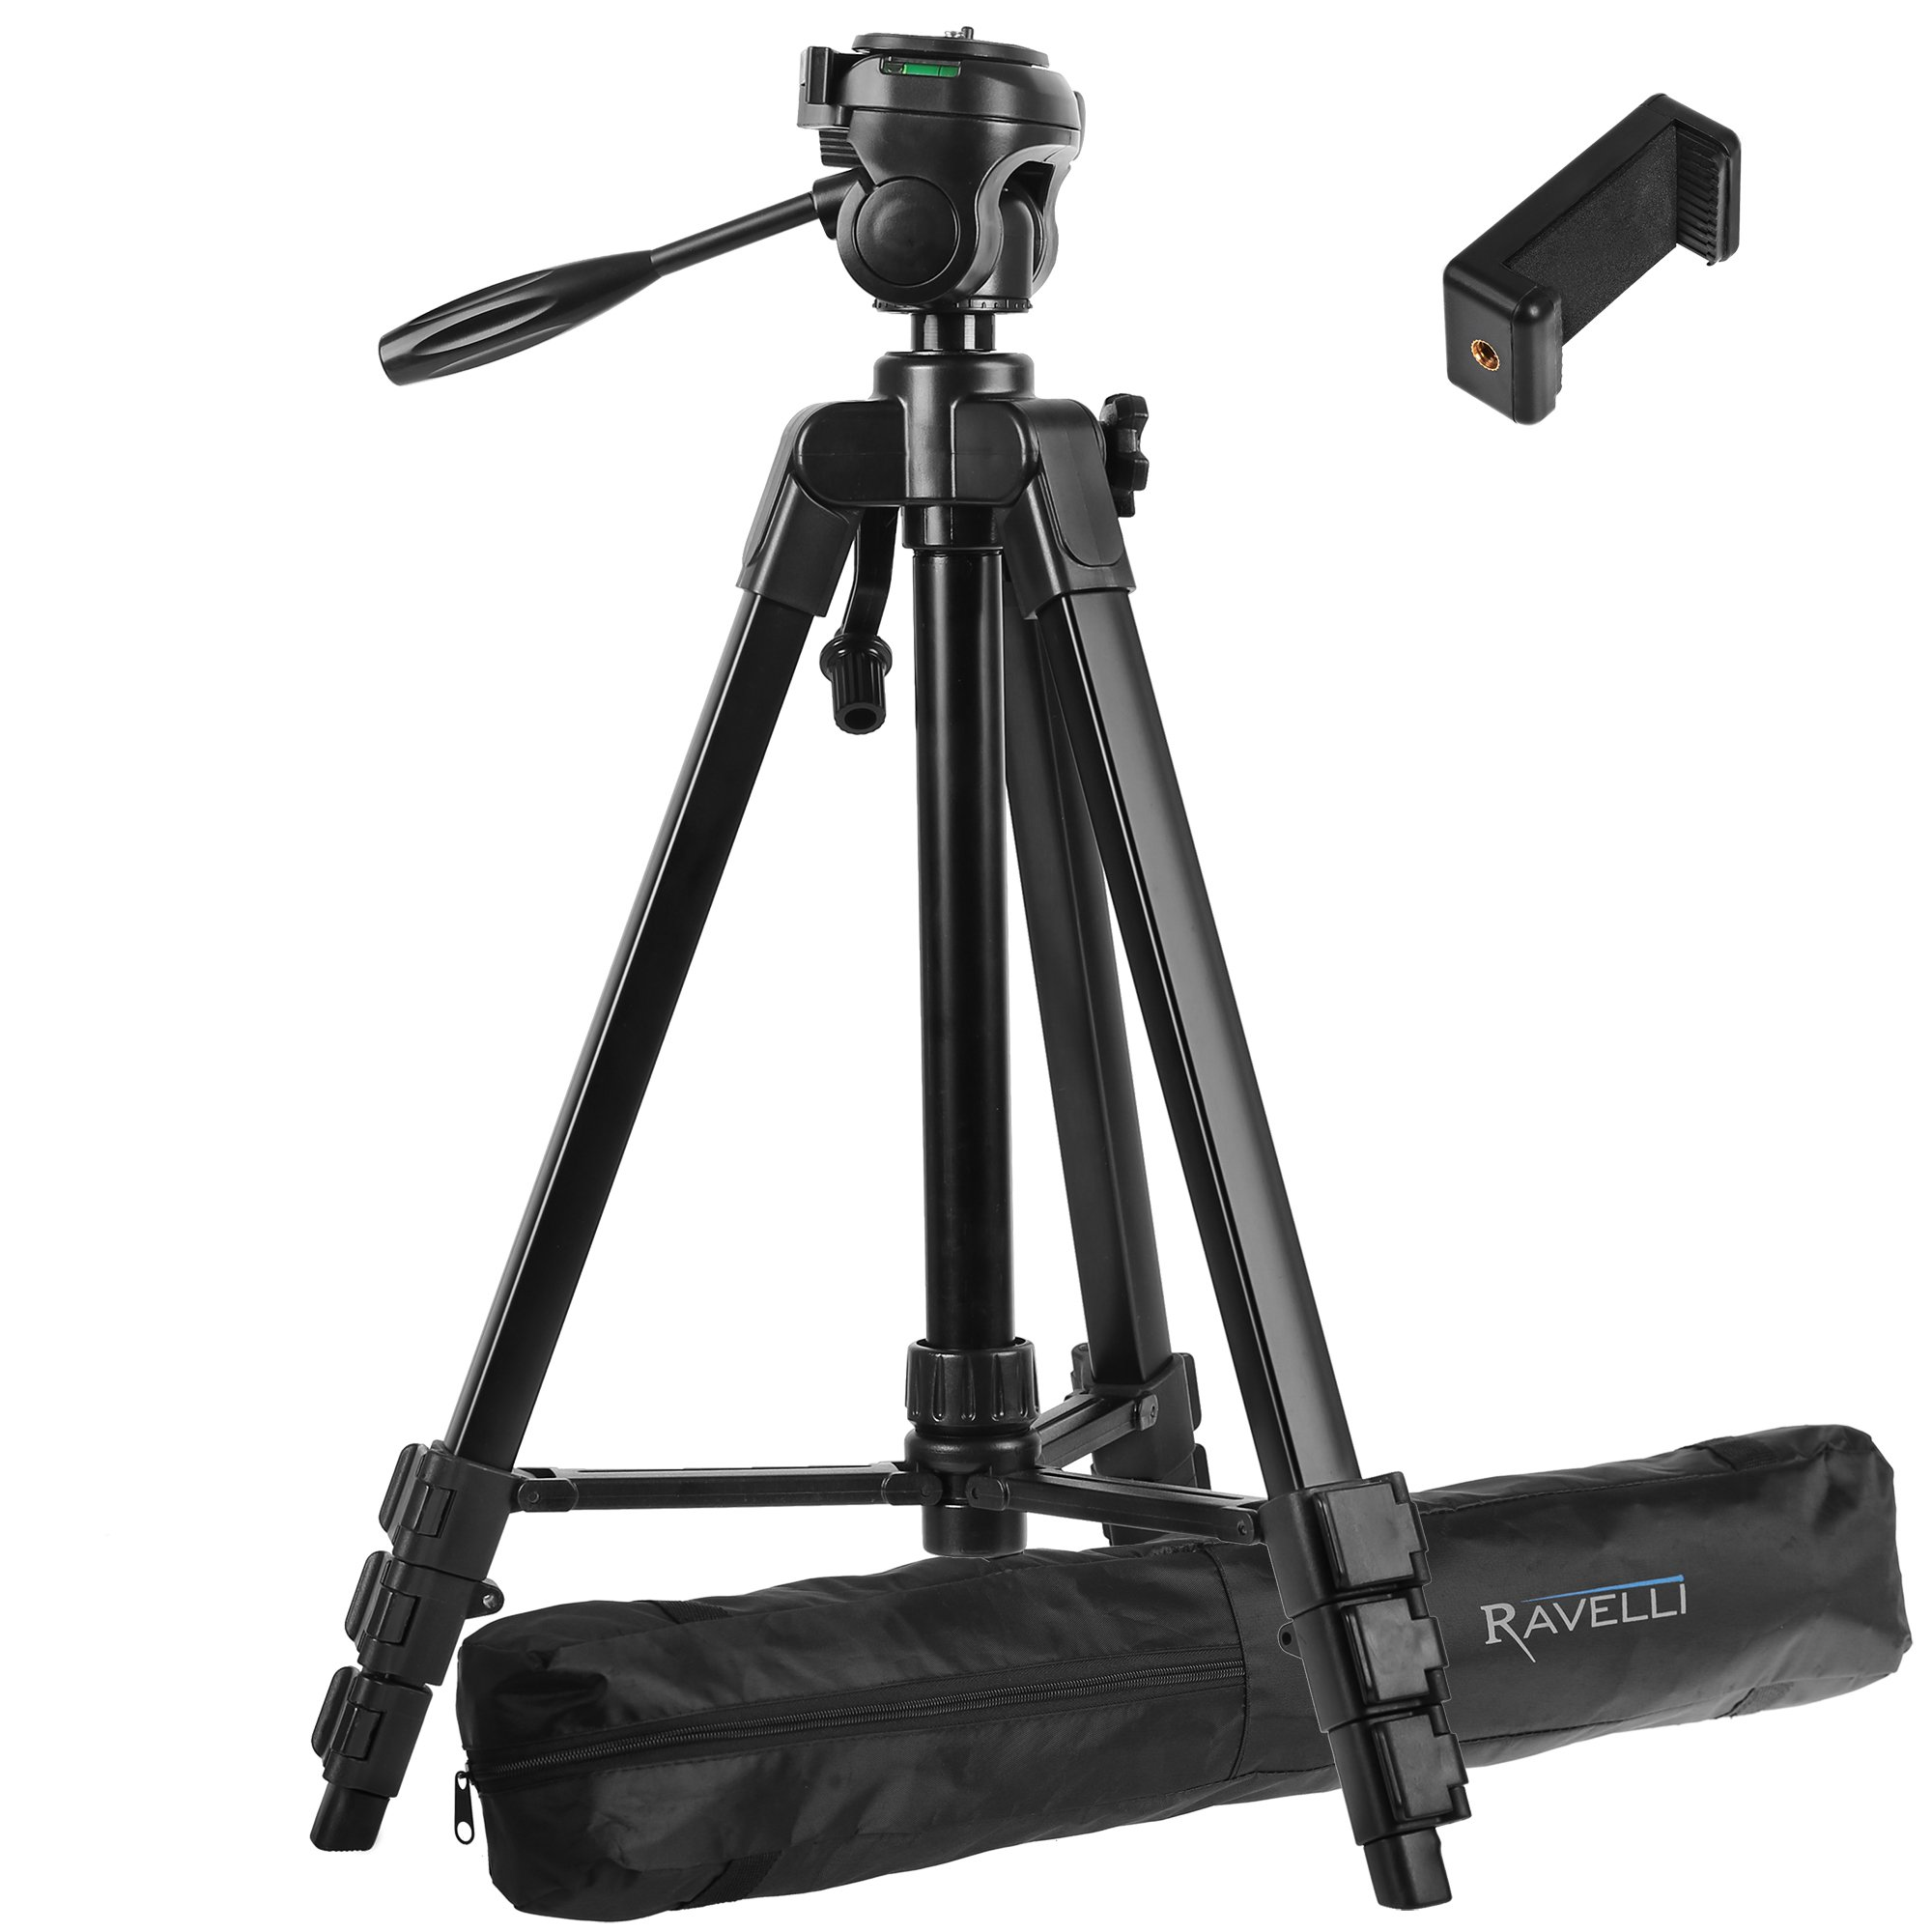 Ravelli APLT4 61'' Light Weight Aluminum Tripod With Bag Includes Universal Smartphone Mount by Ravelli